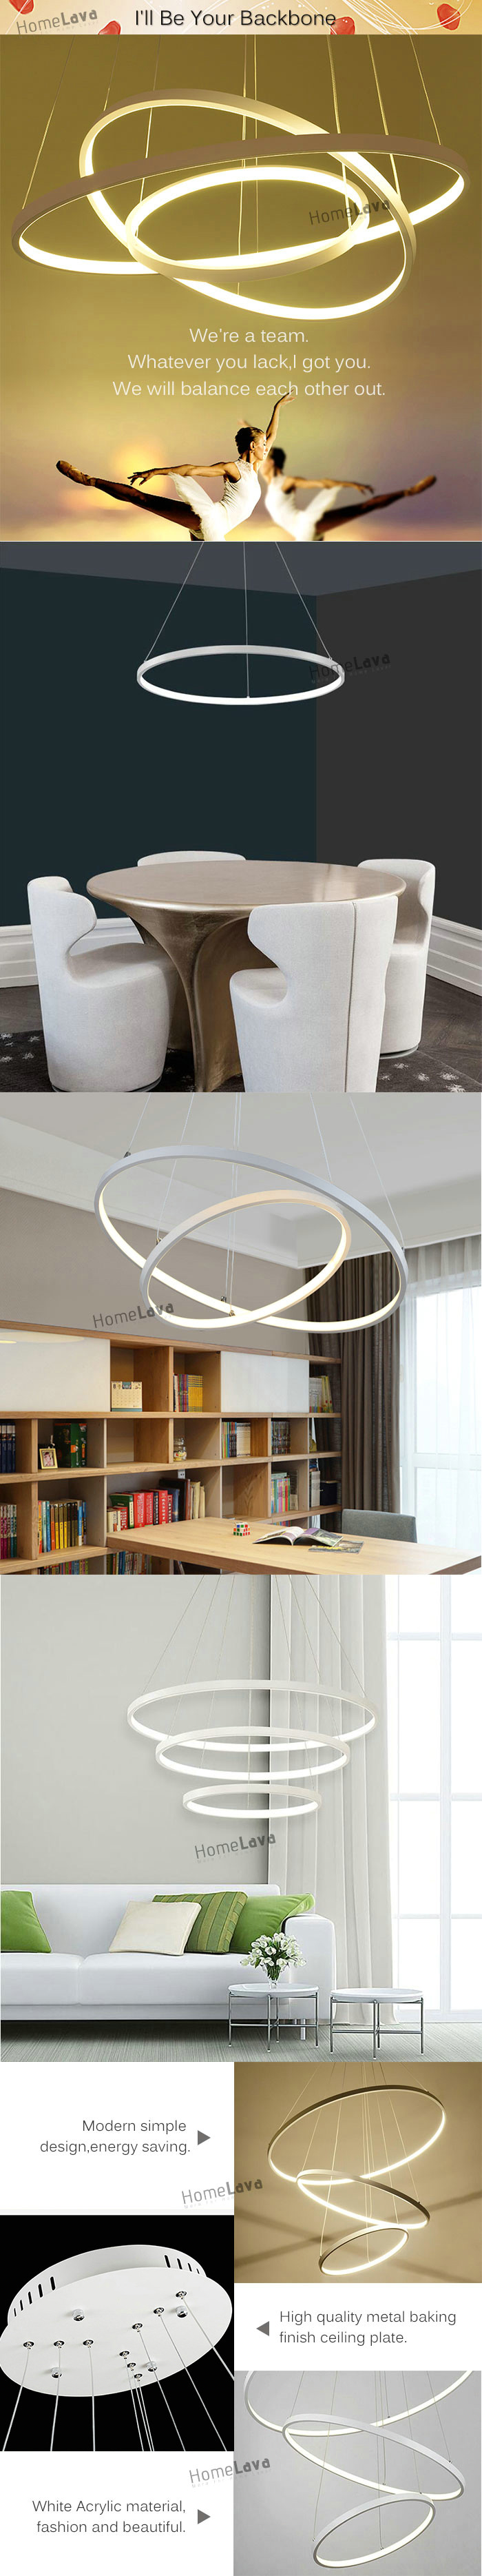 Modern Simple Metal + Acrylic White / Warm White Light LED Patch Ceiling Light Energy Saving(I'll Be Your Backbone)